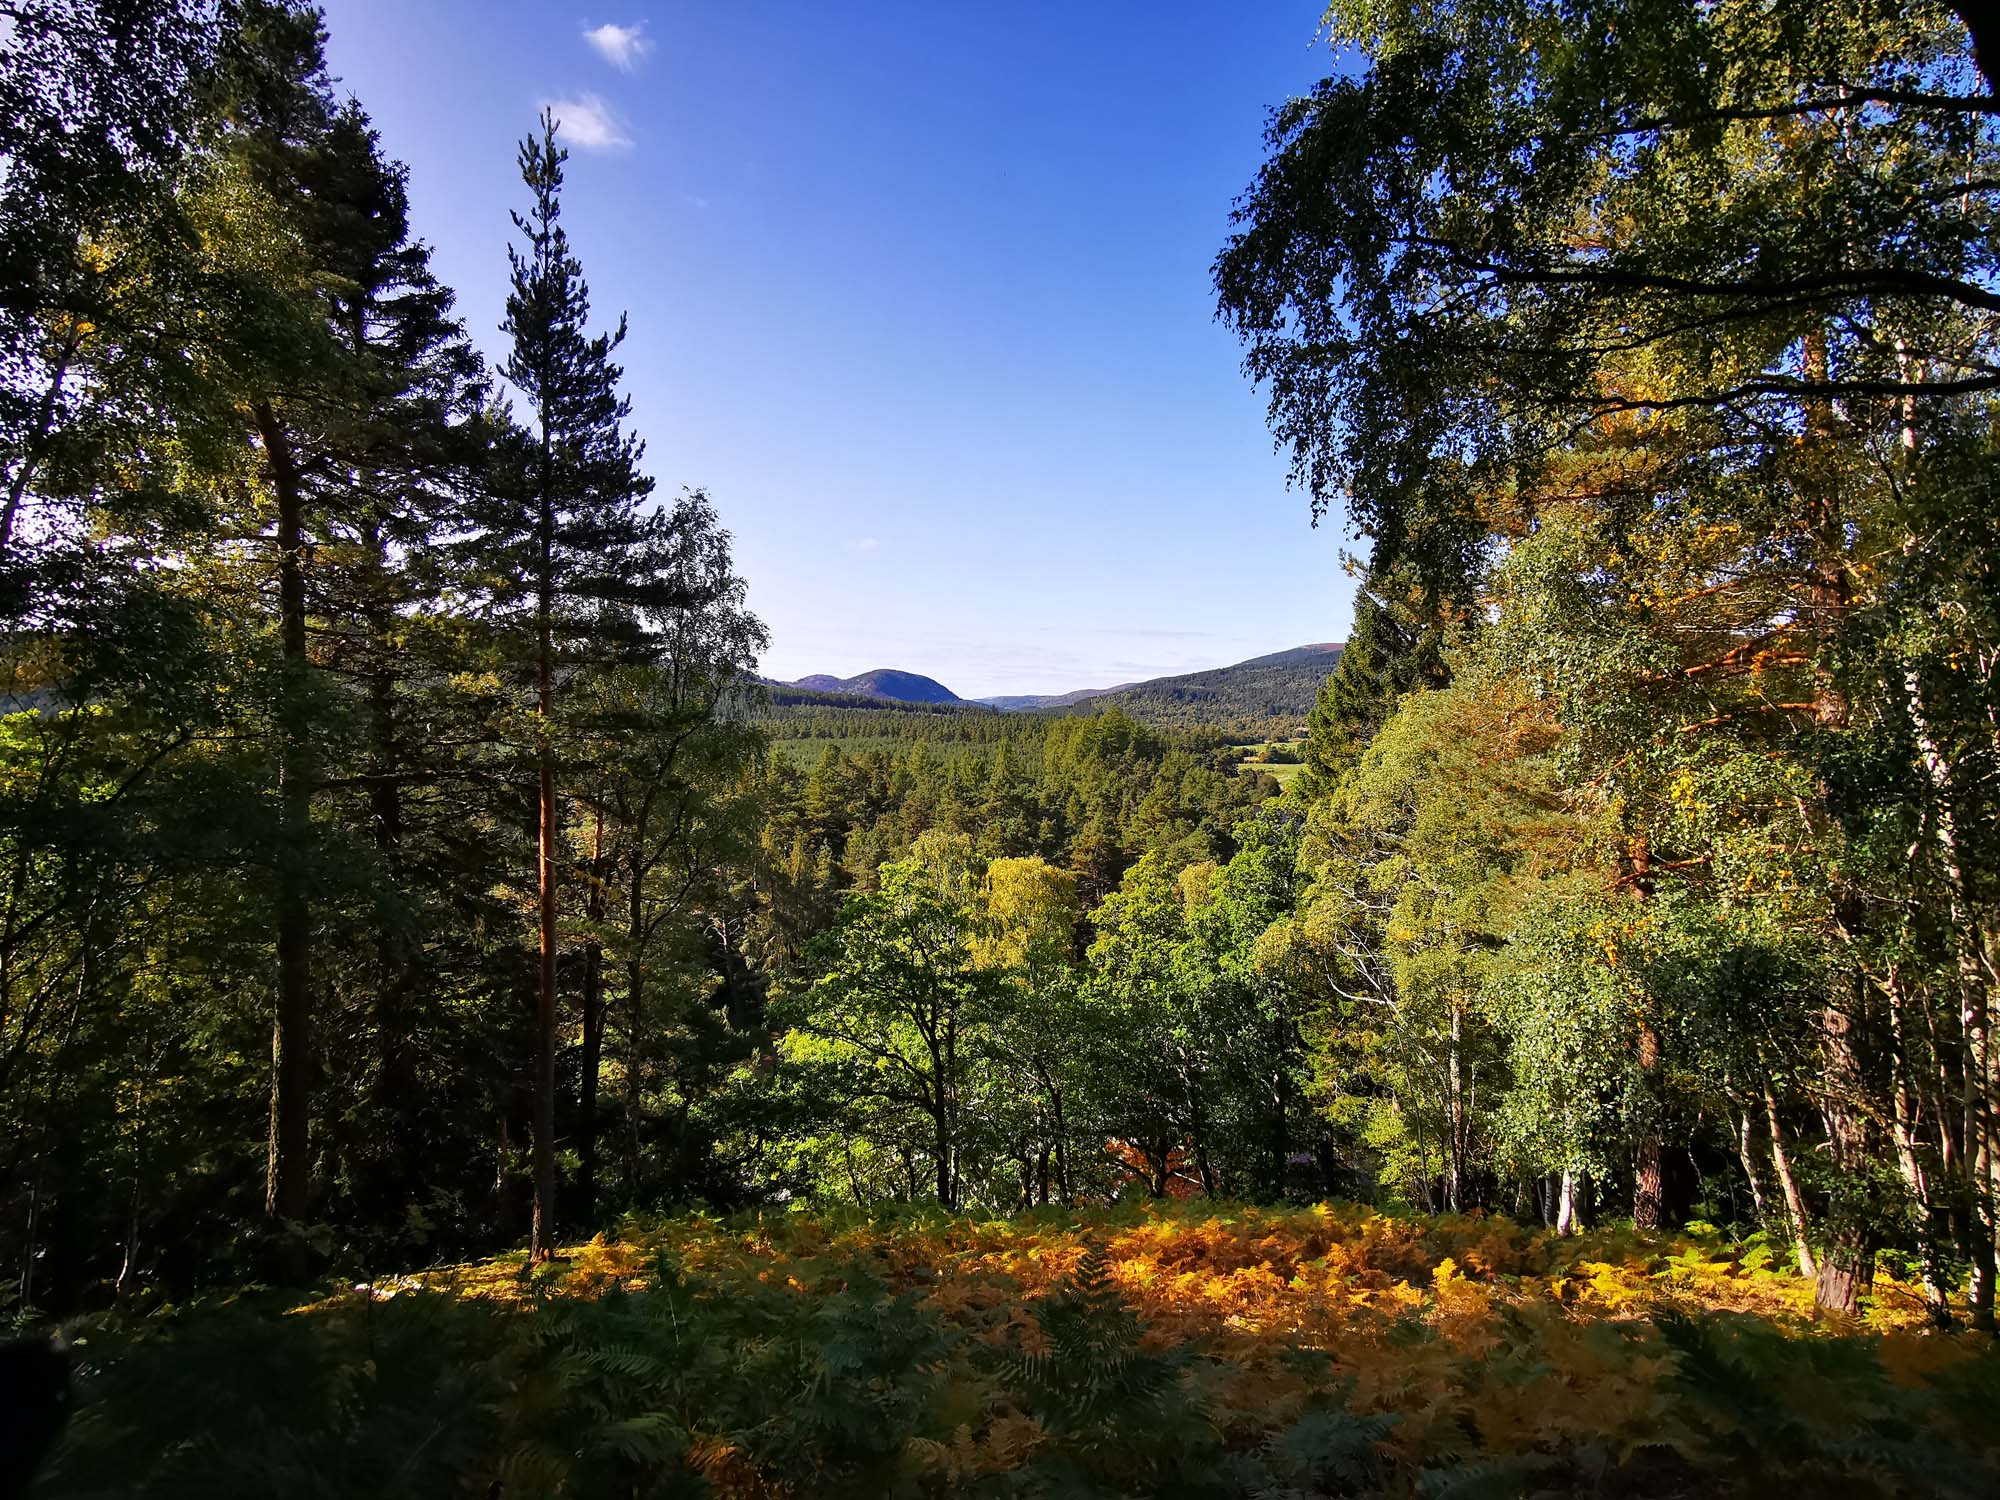 Walking in Ballater with a clear sky